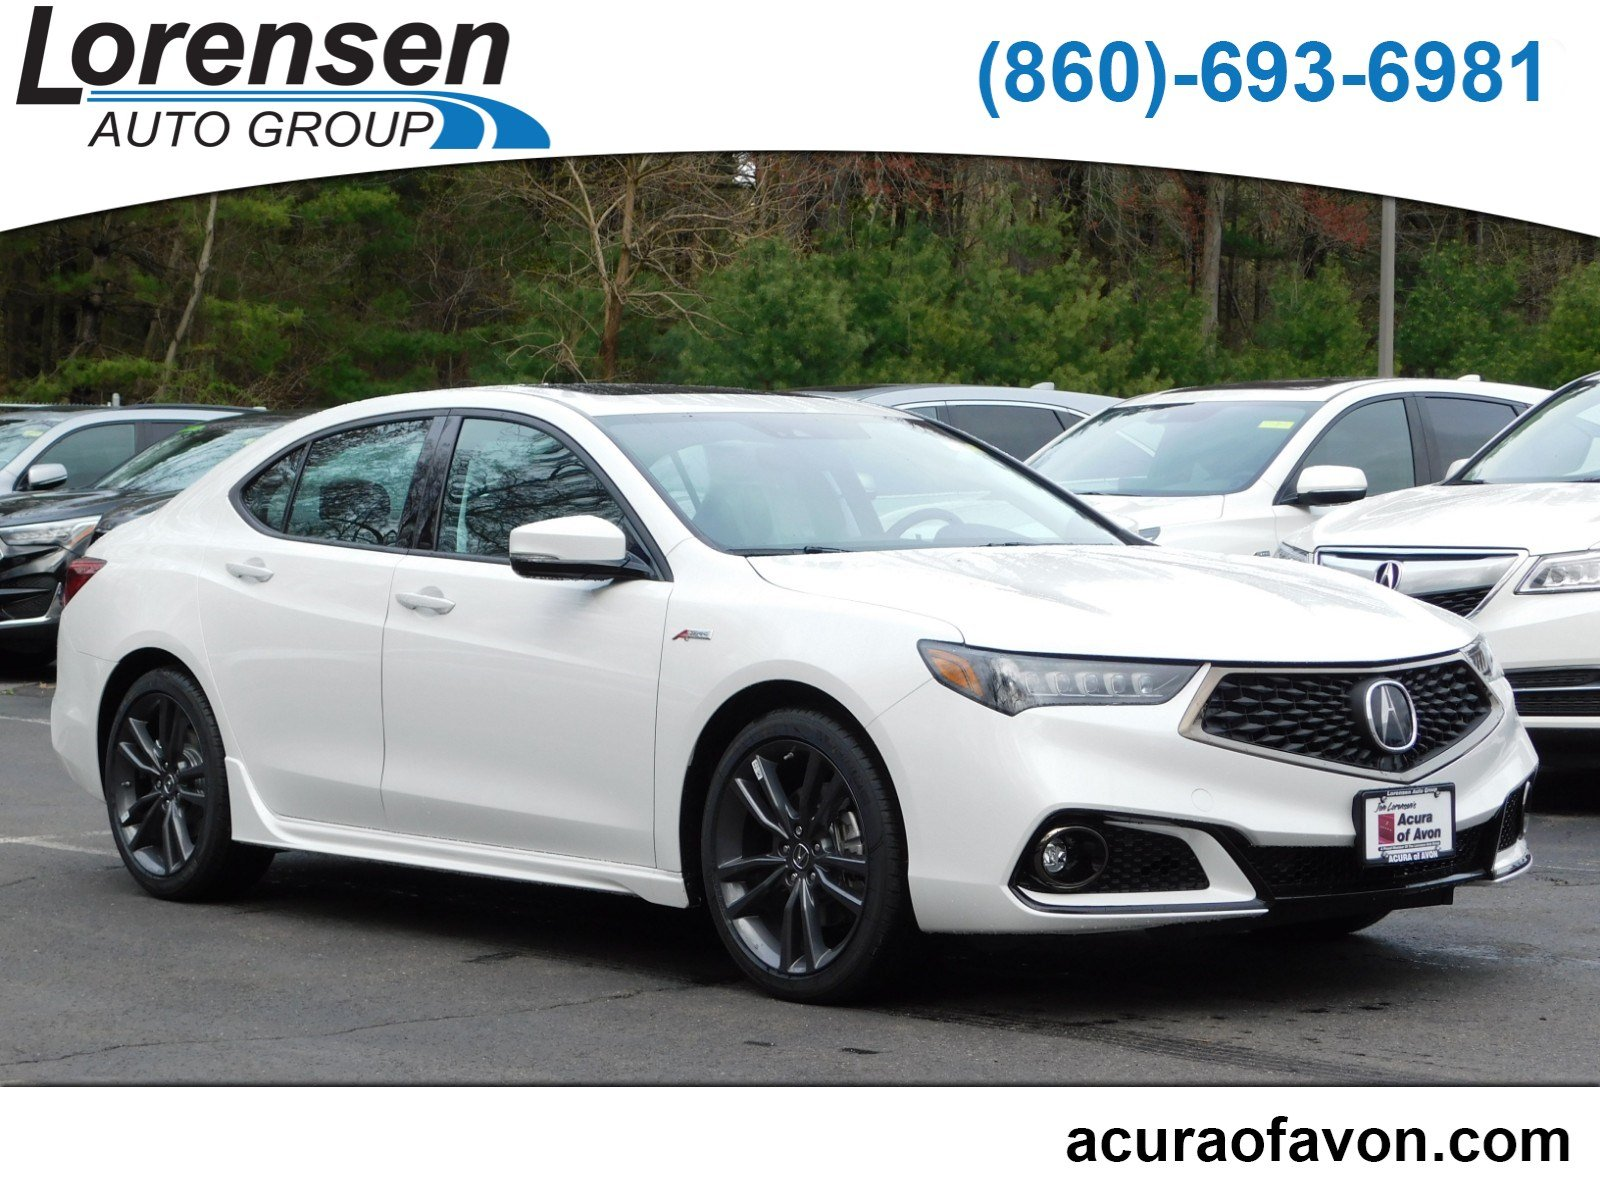 2020 Acura TLX with A-Spec Package